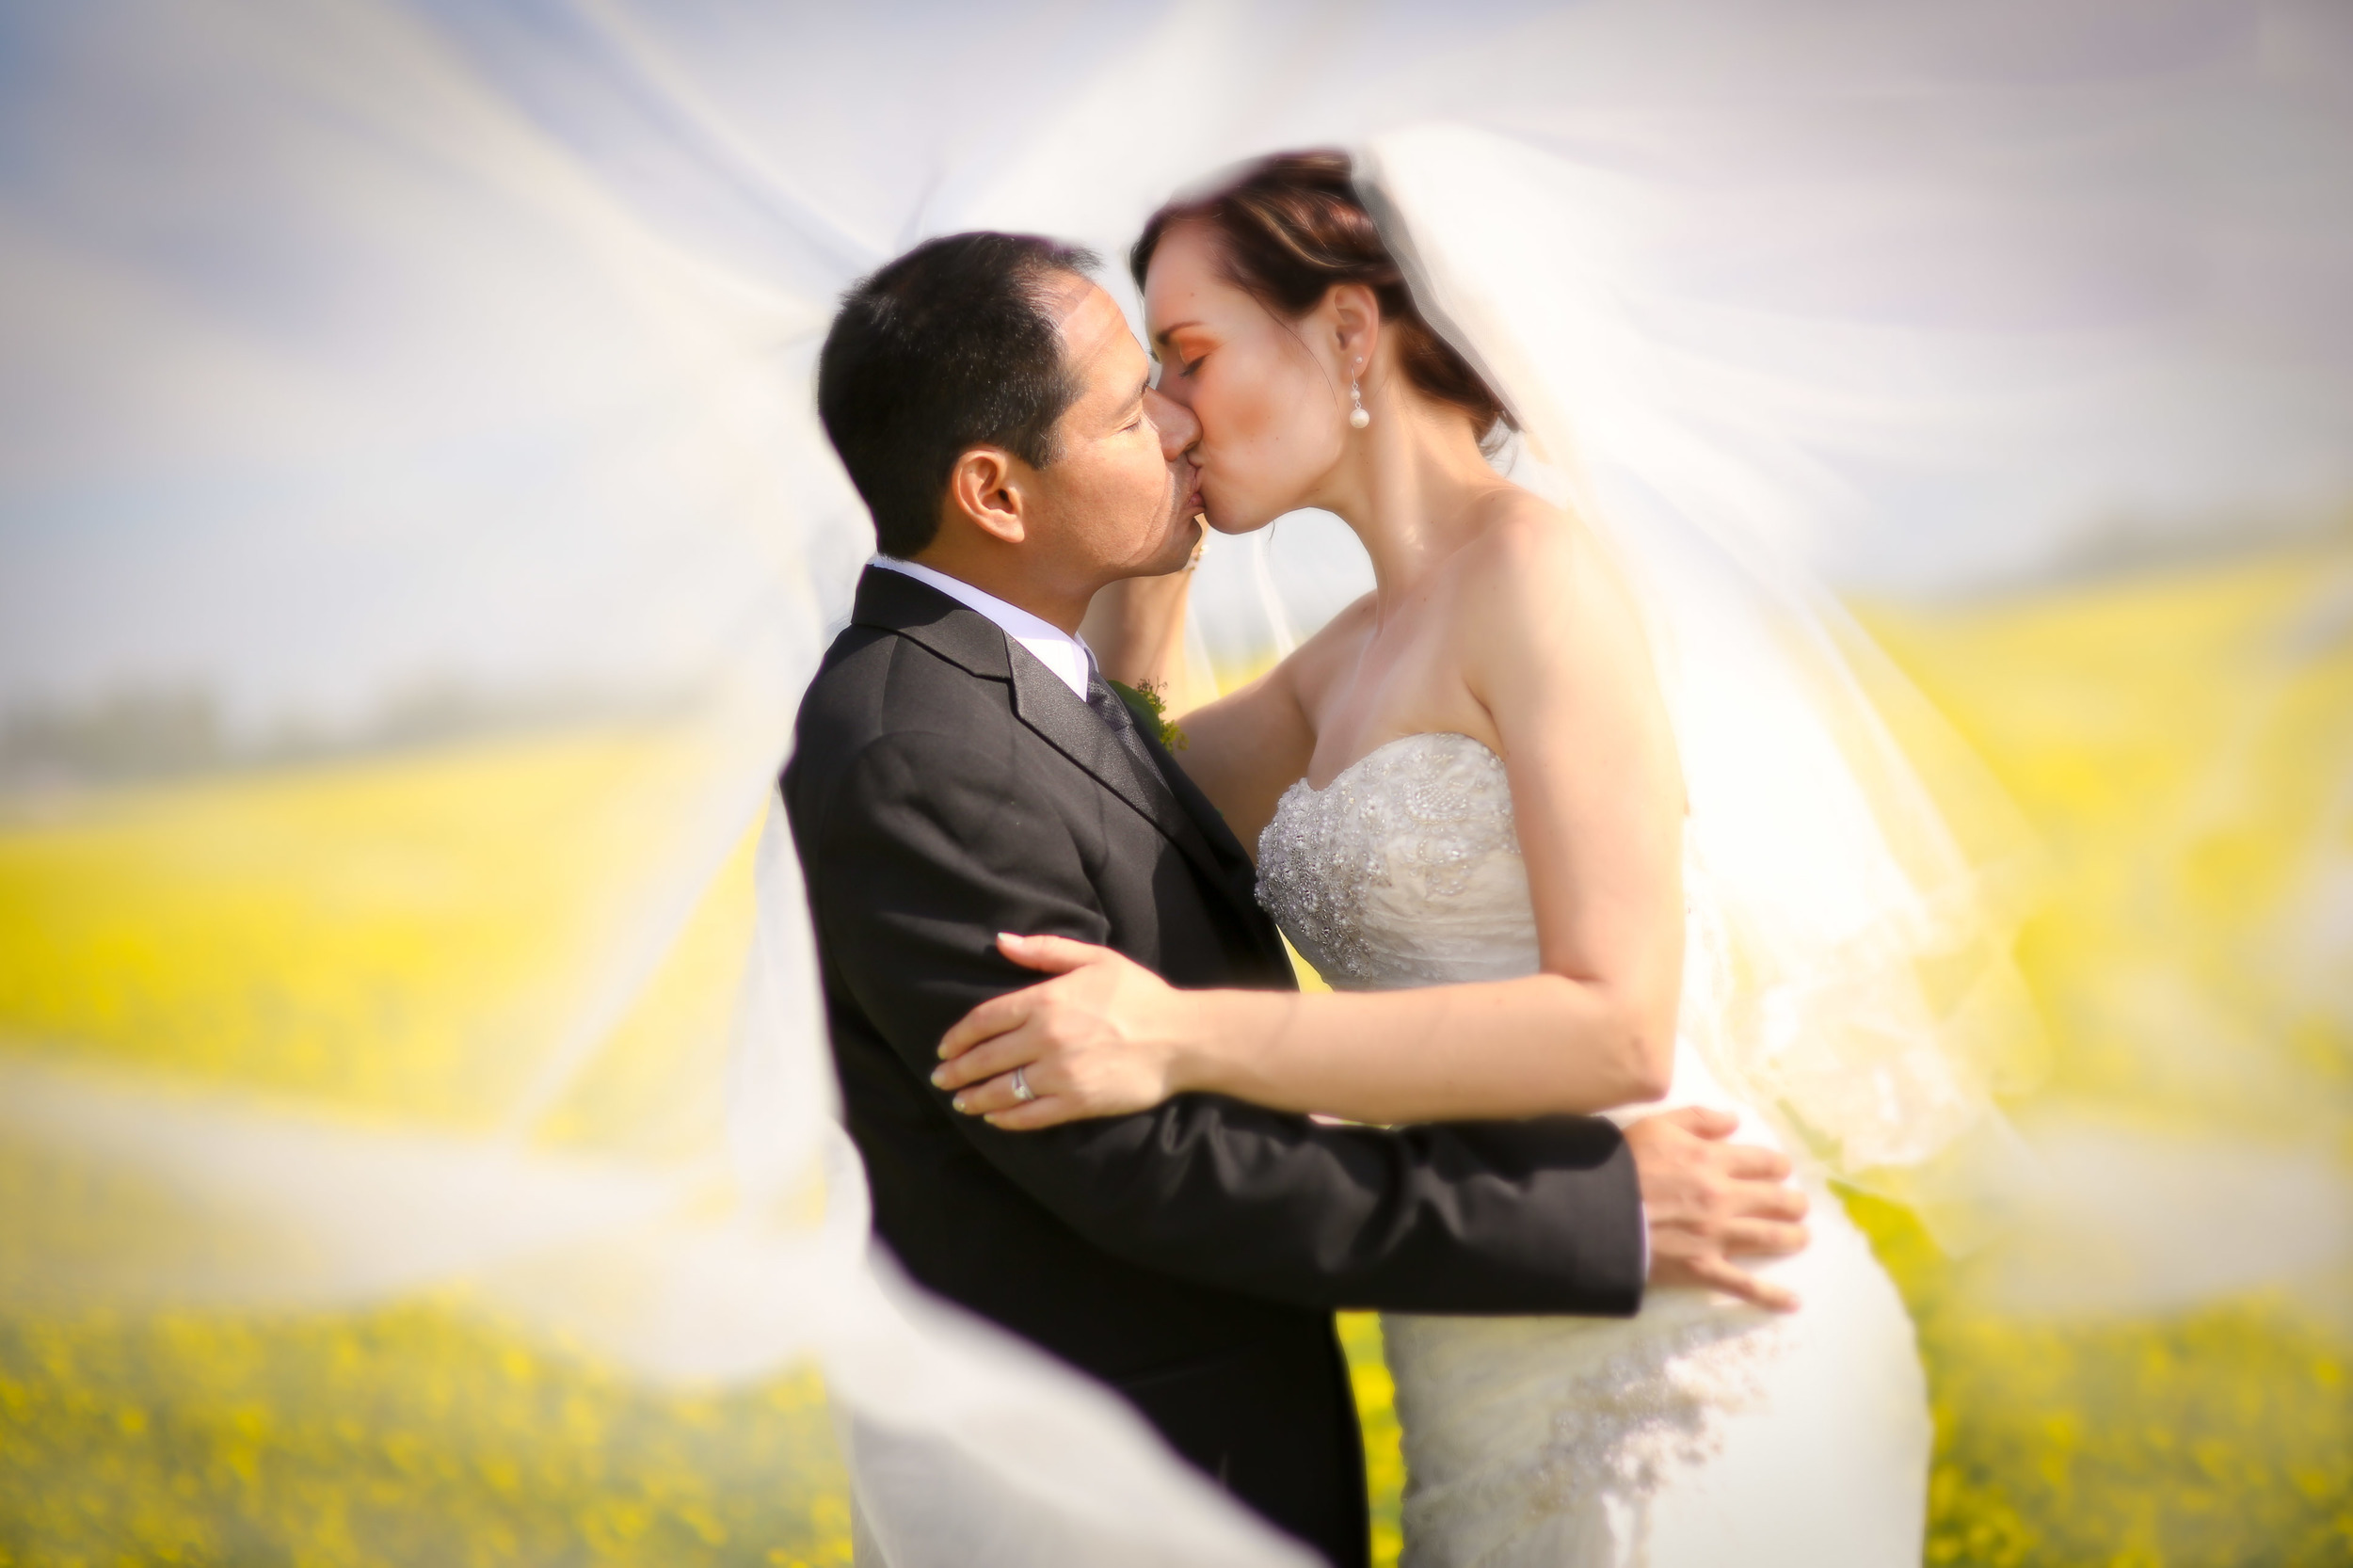 In the Canola Fields - Photography by Benamoz 2015 Wedding Contest.jpg